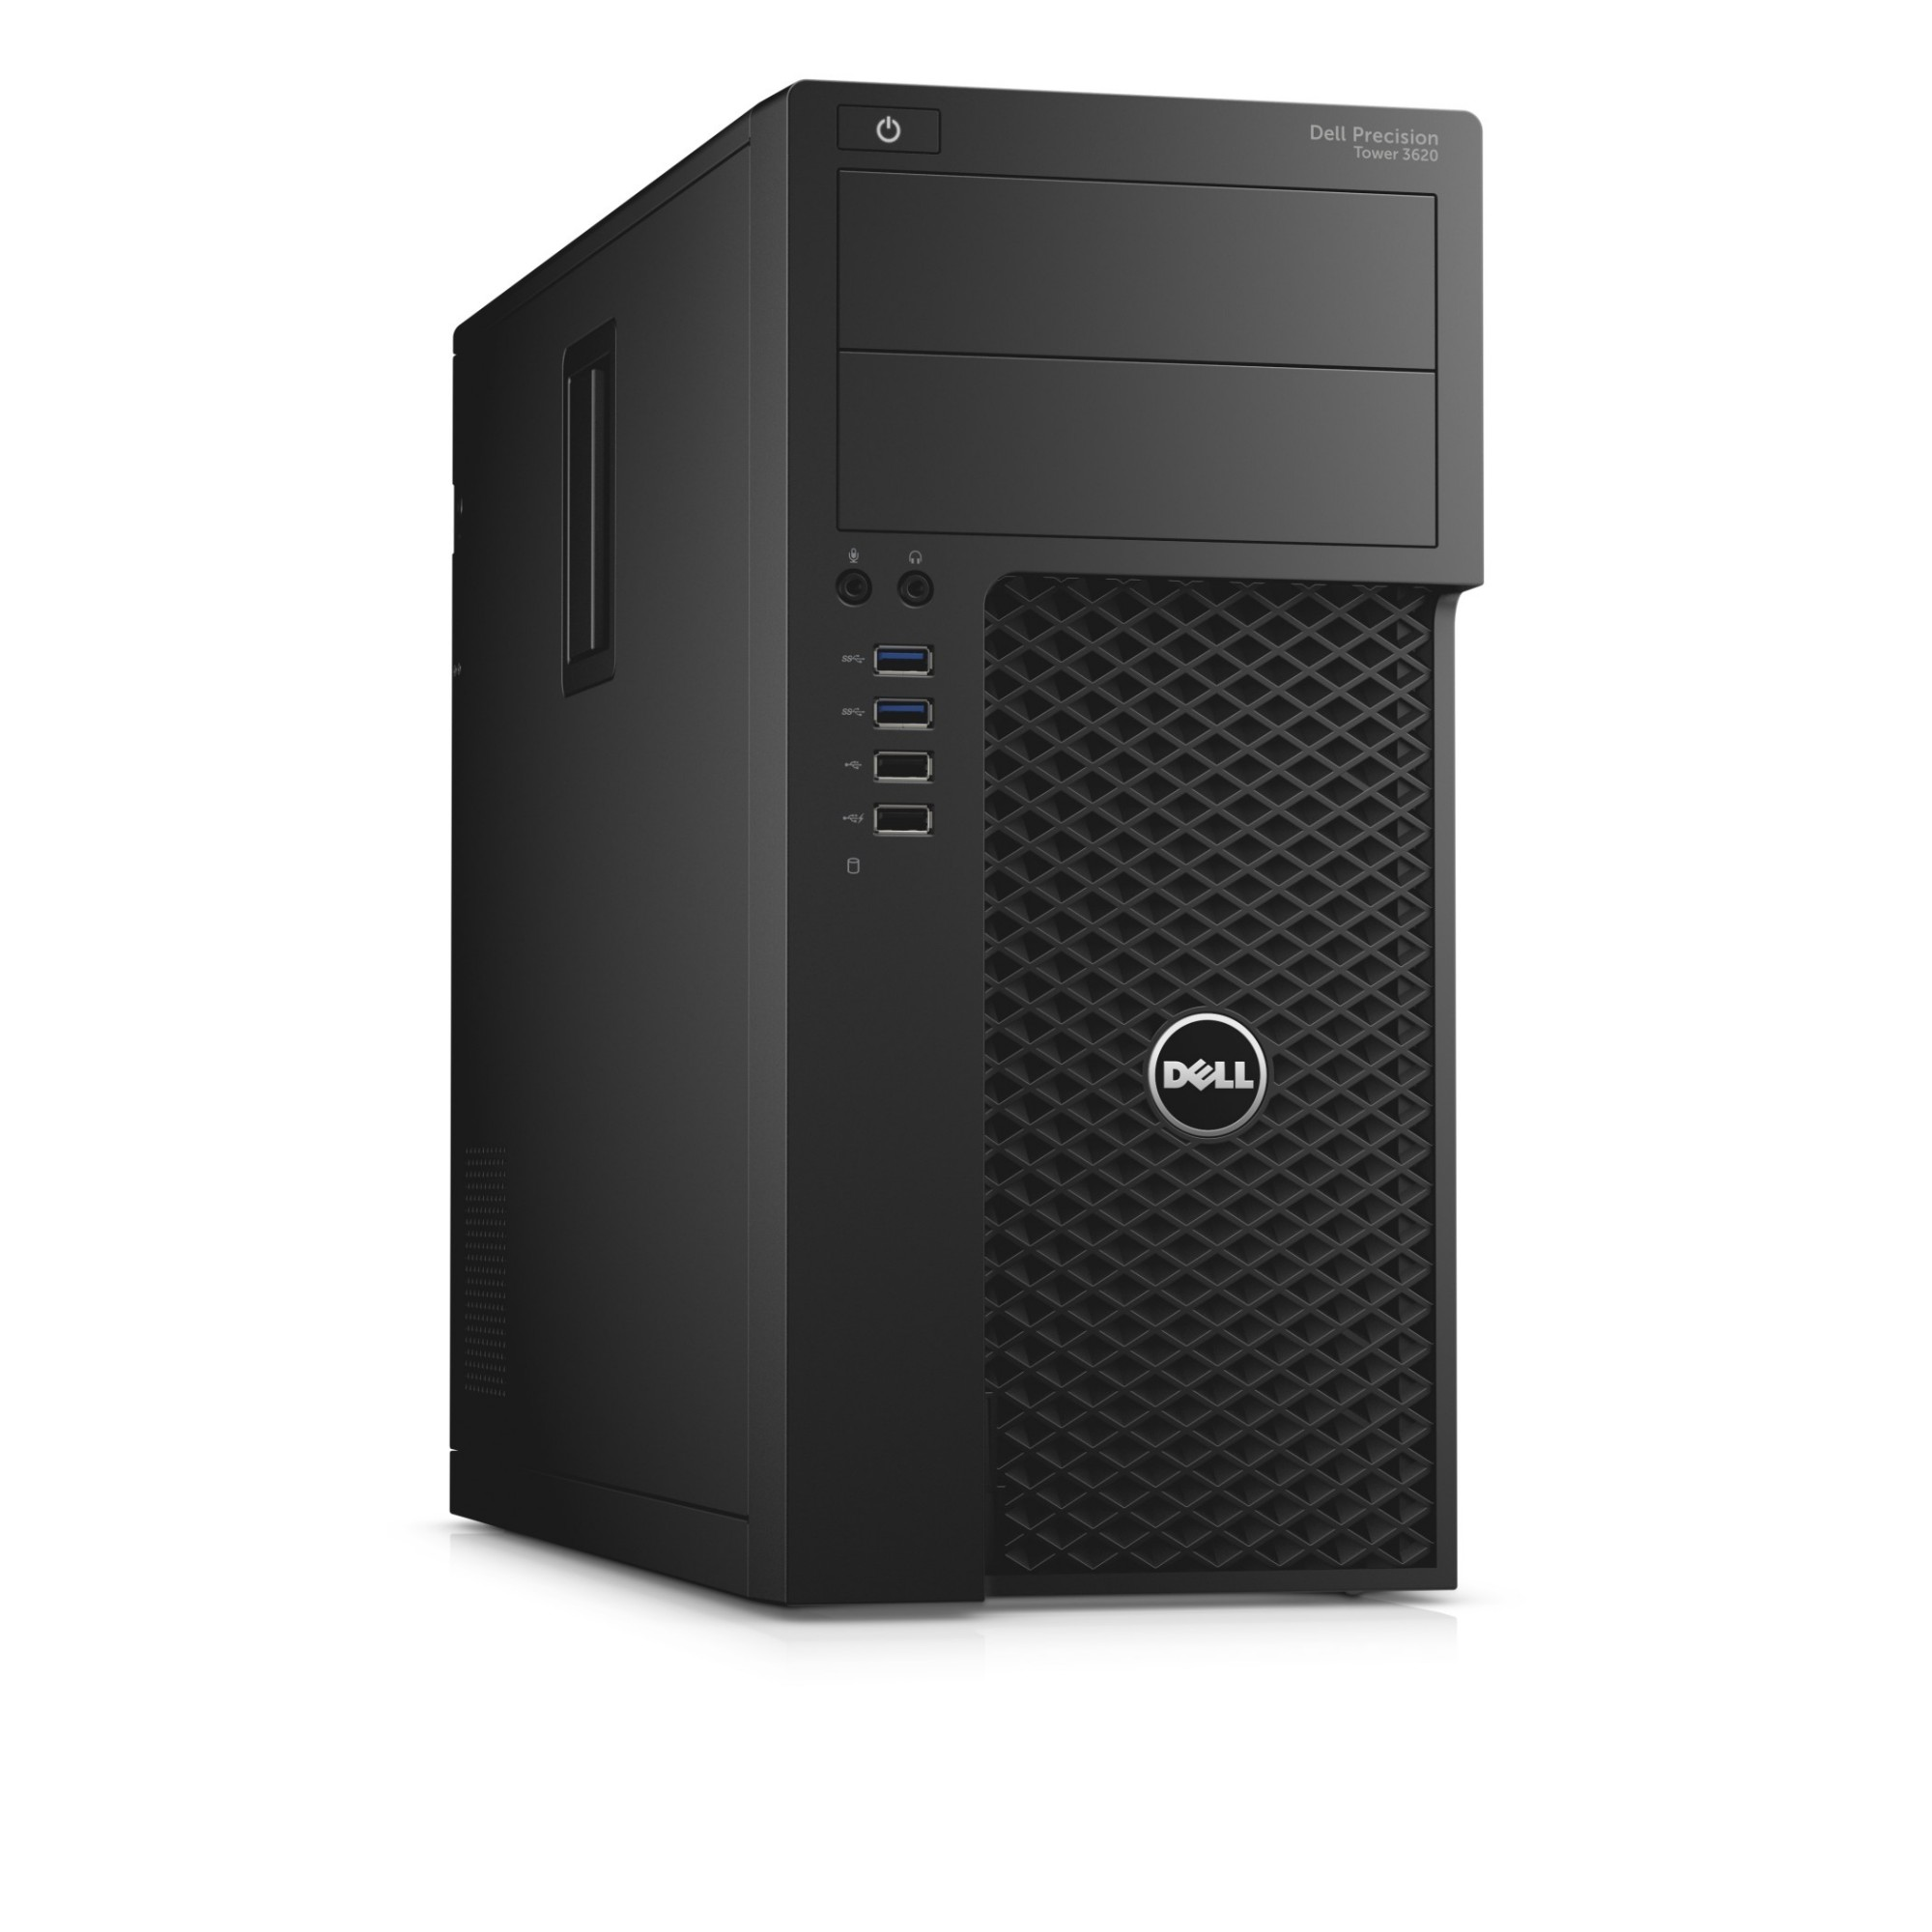 DELL Precision T3620 3.5GHz E3-1240V5 Mini Tower Workstation